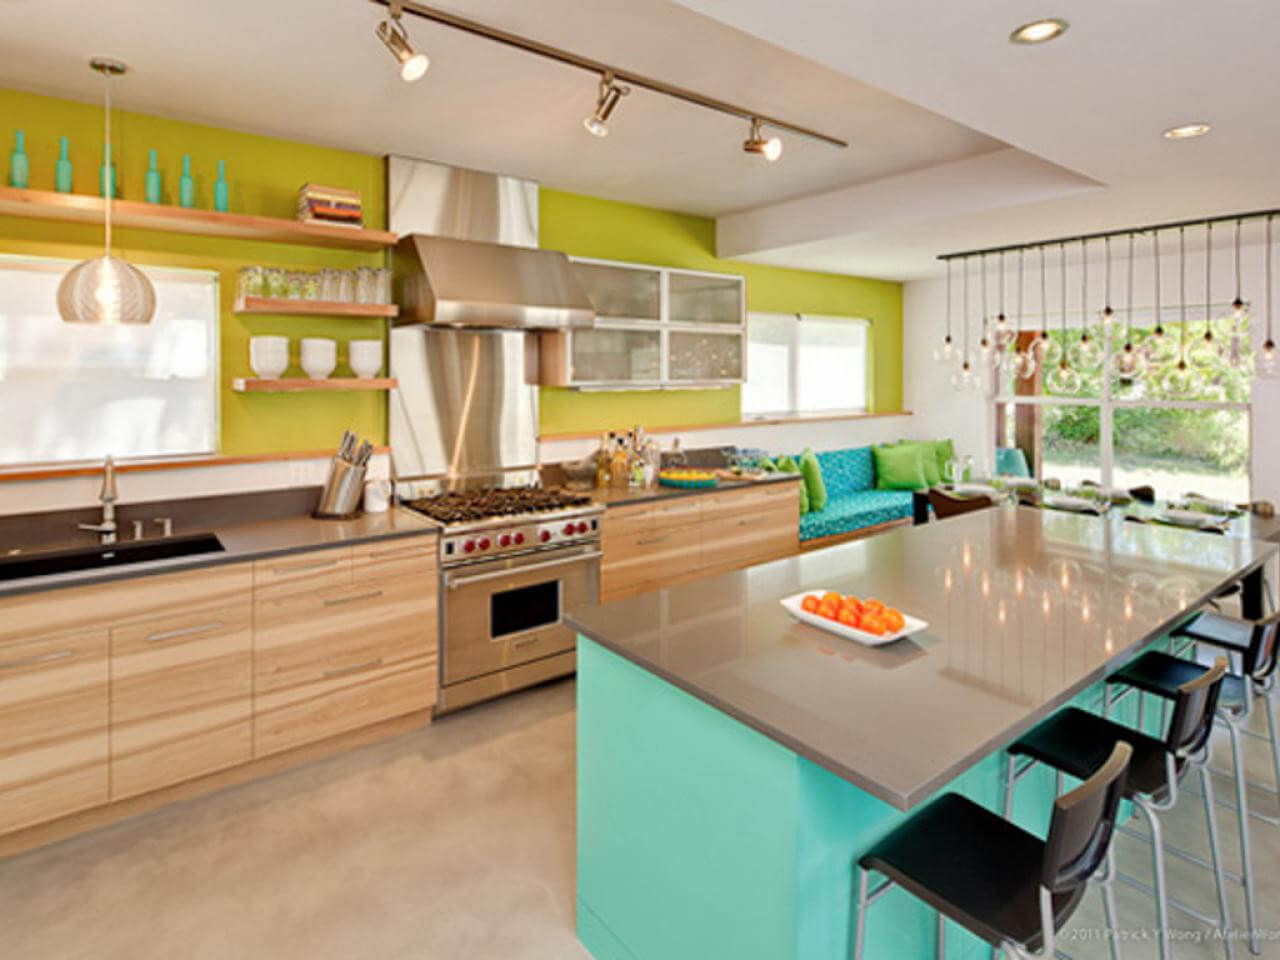 Kitchens can benefit from an assortment of old school colors